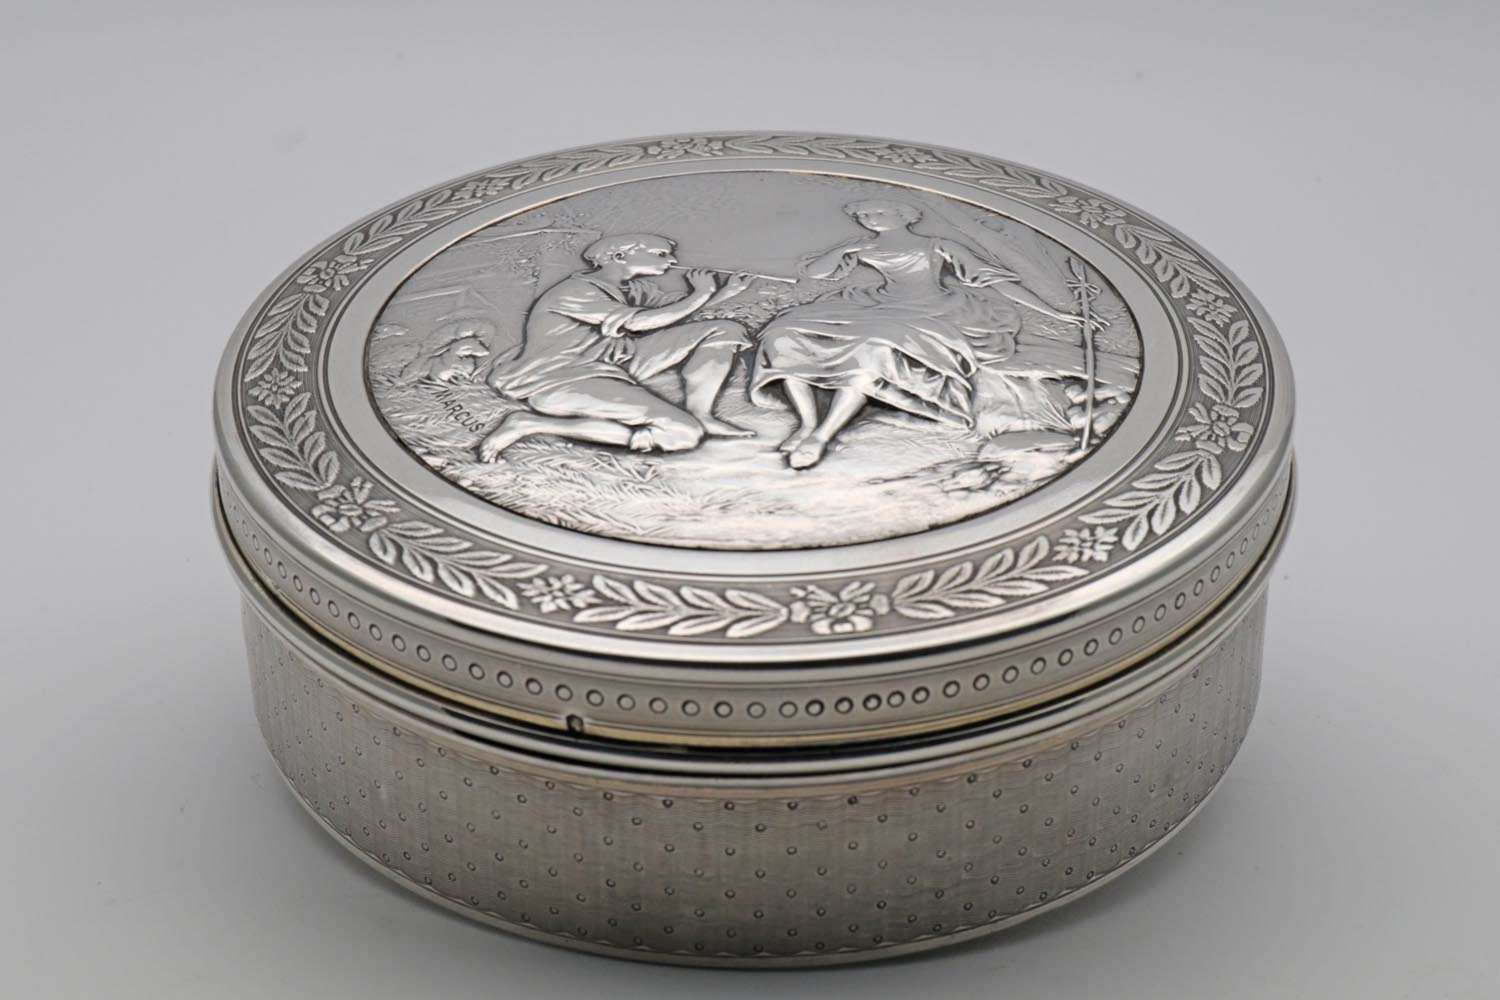 Engraved silver box by Schweitzer and Fort Paris c.1905